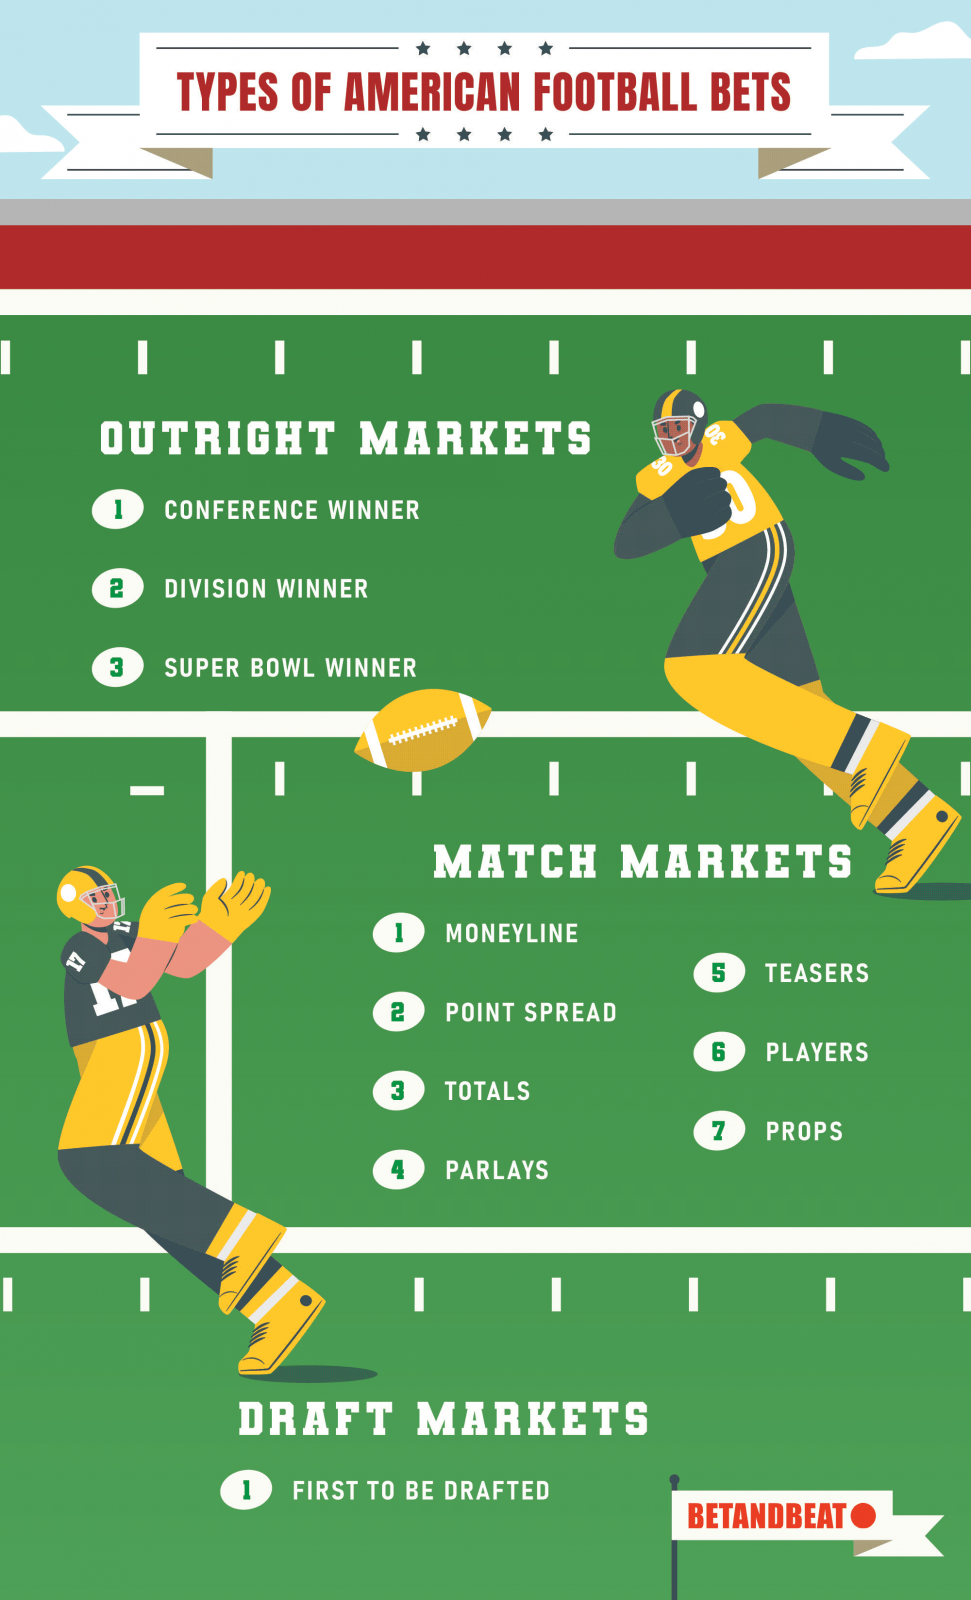 different types of american football bets and wagers